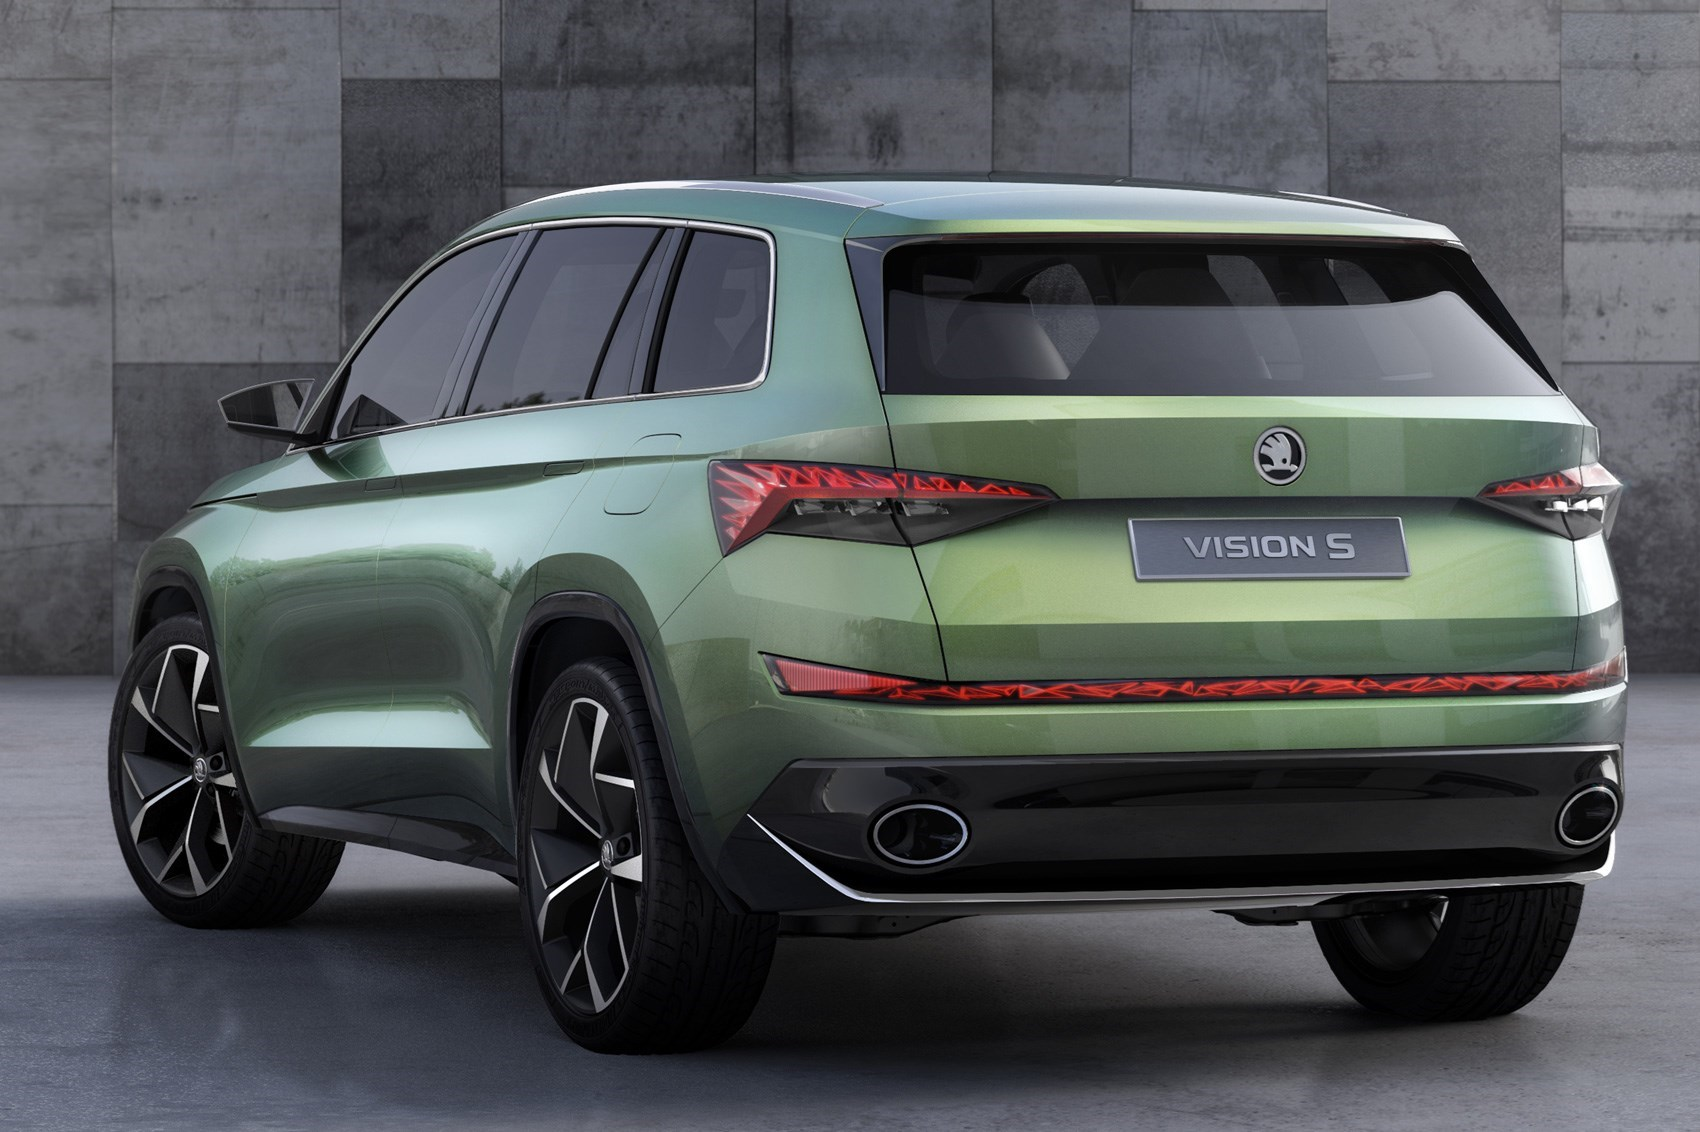 Skoda yeti 2017 review release date new automotive trends skoda -  2017 Skoda Yeti Skoda Vision S Concept Car Points To New Kodiaq